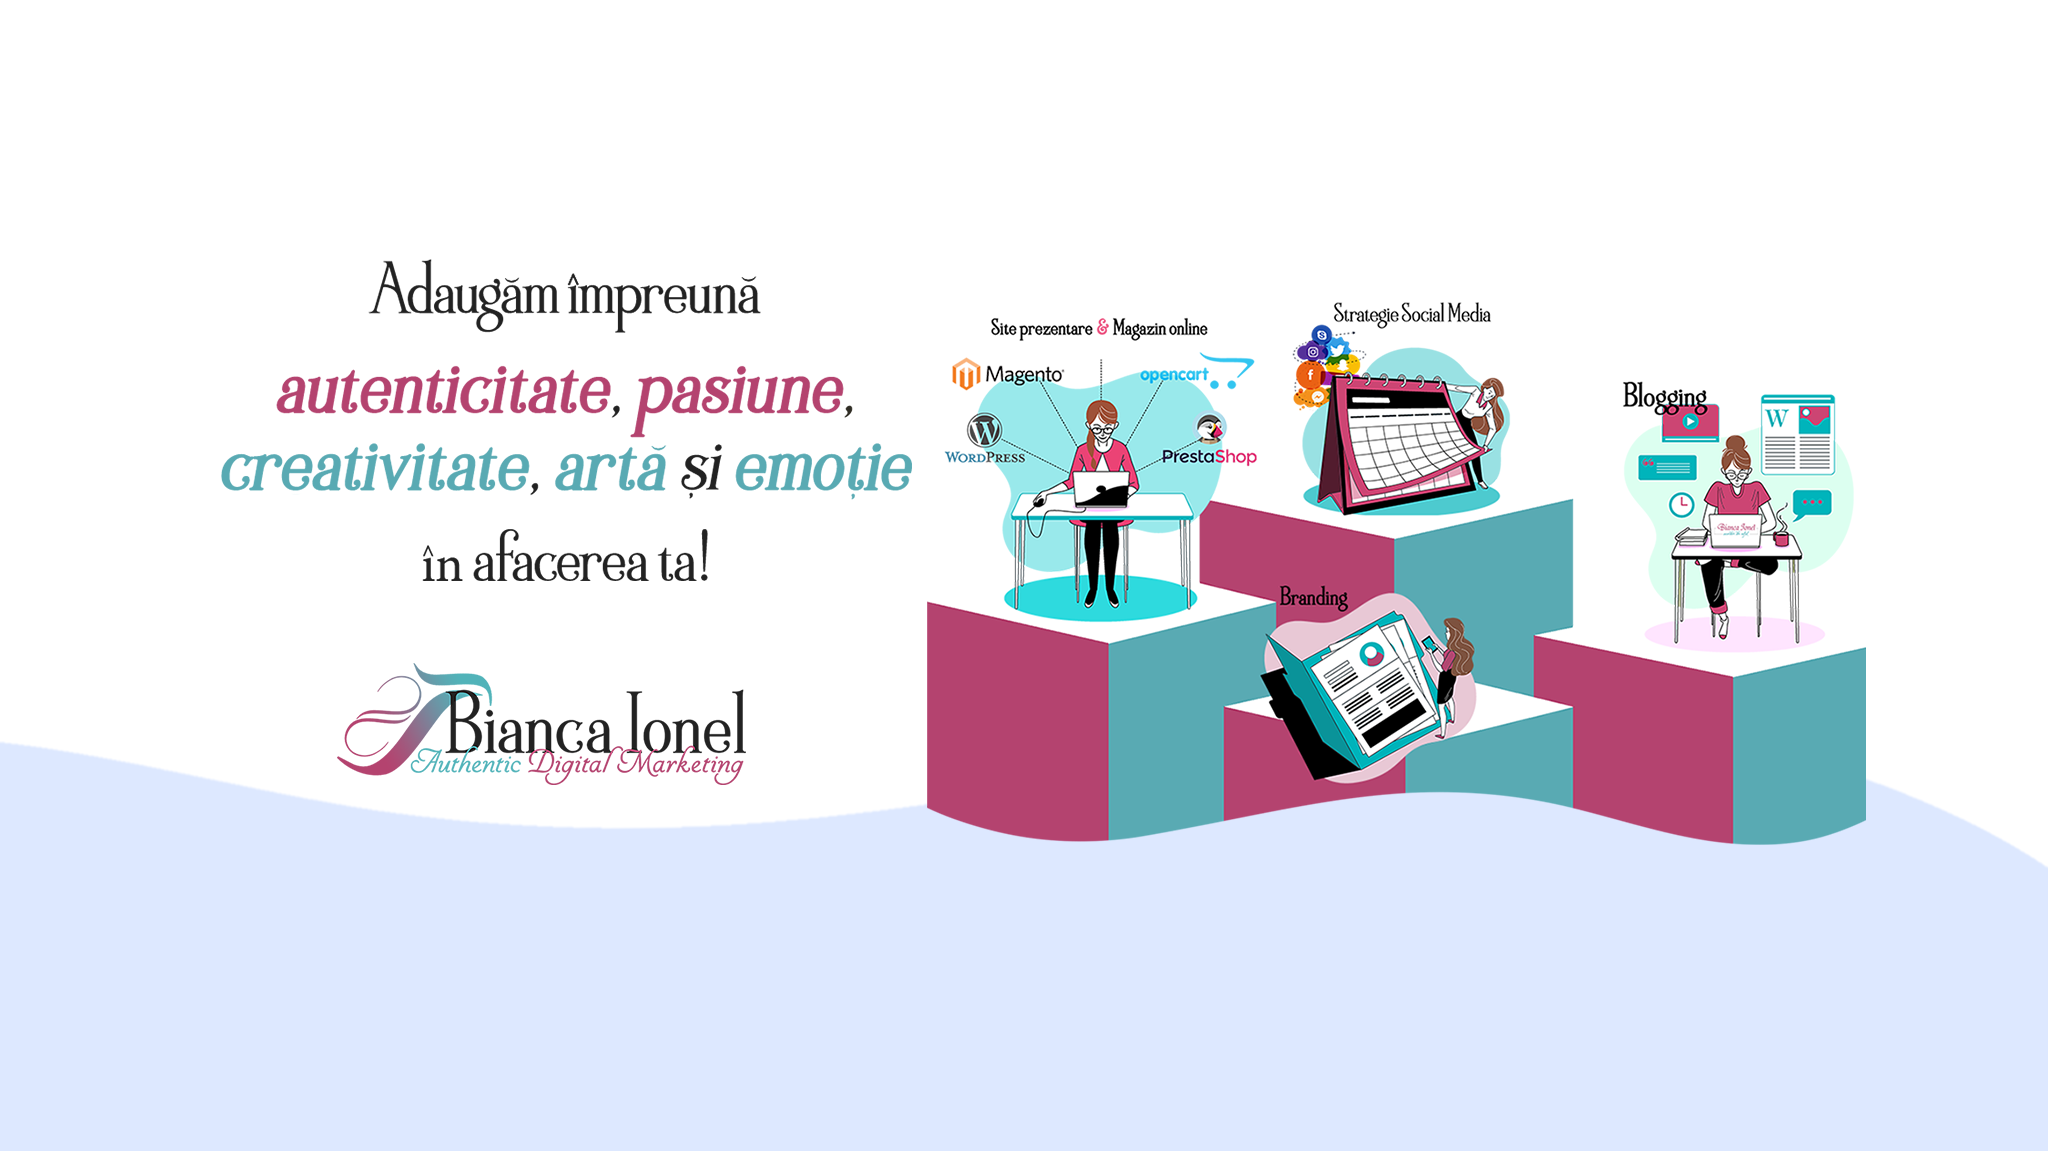 Authentic Digital Marketing by Bianca Ionel